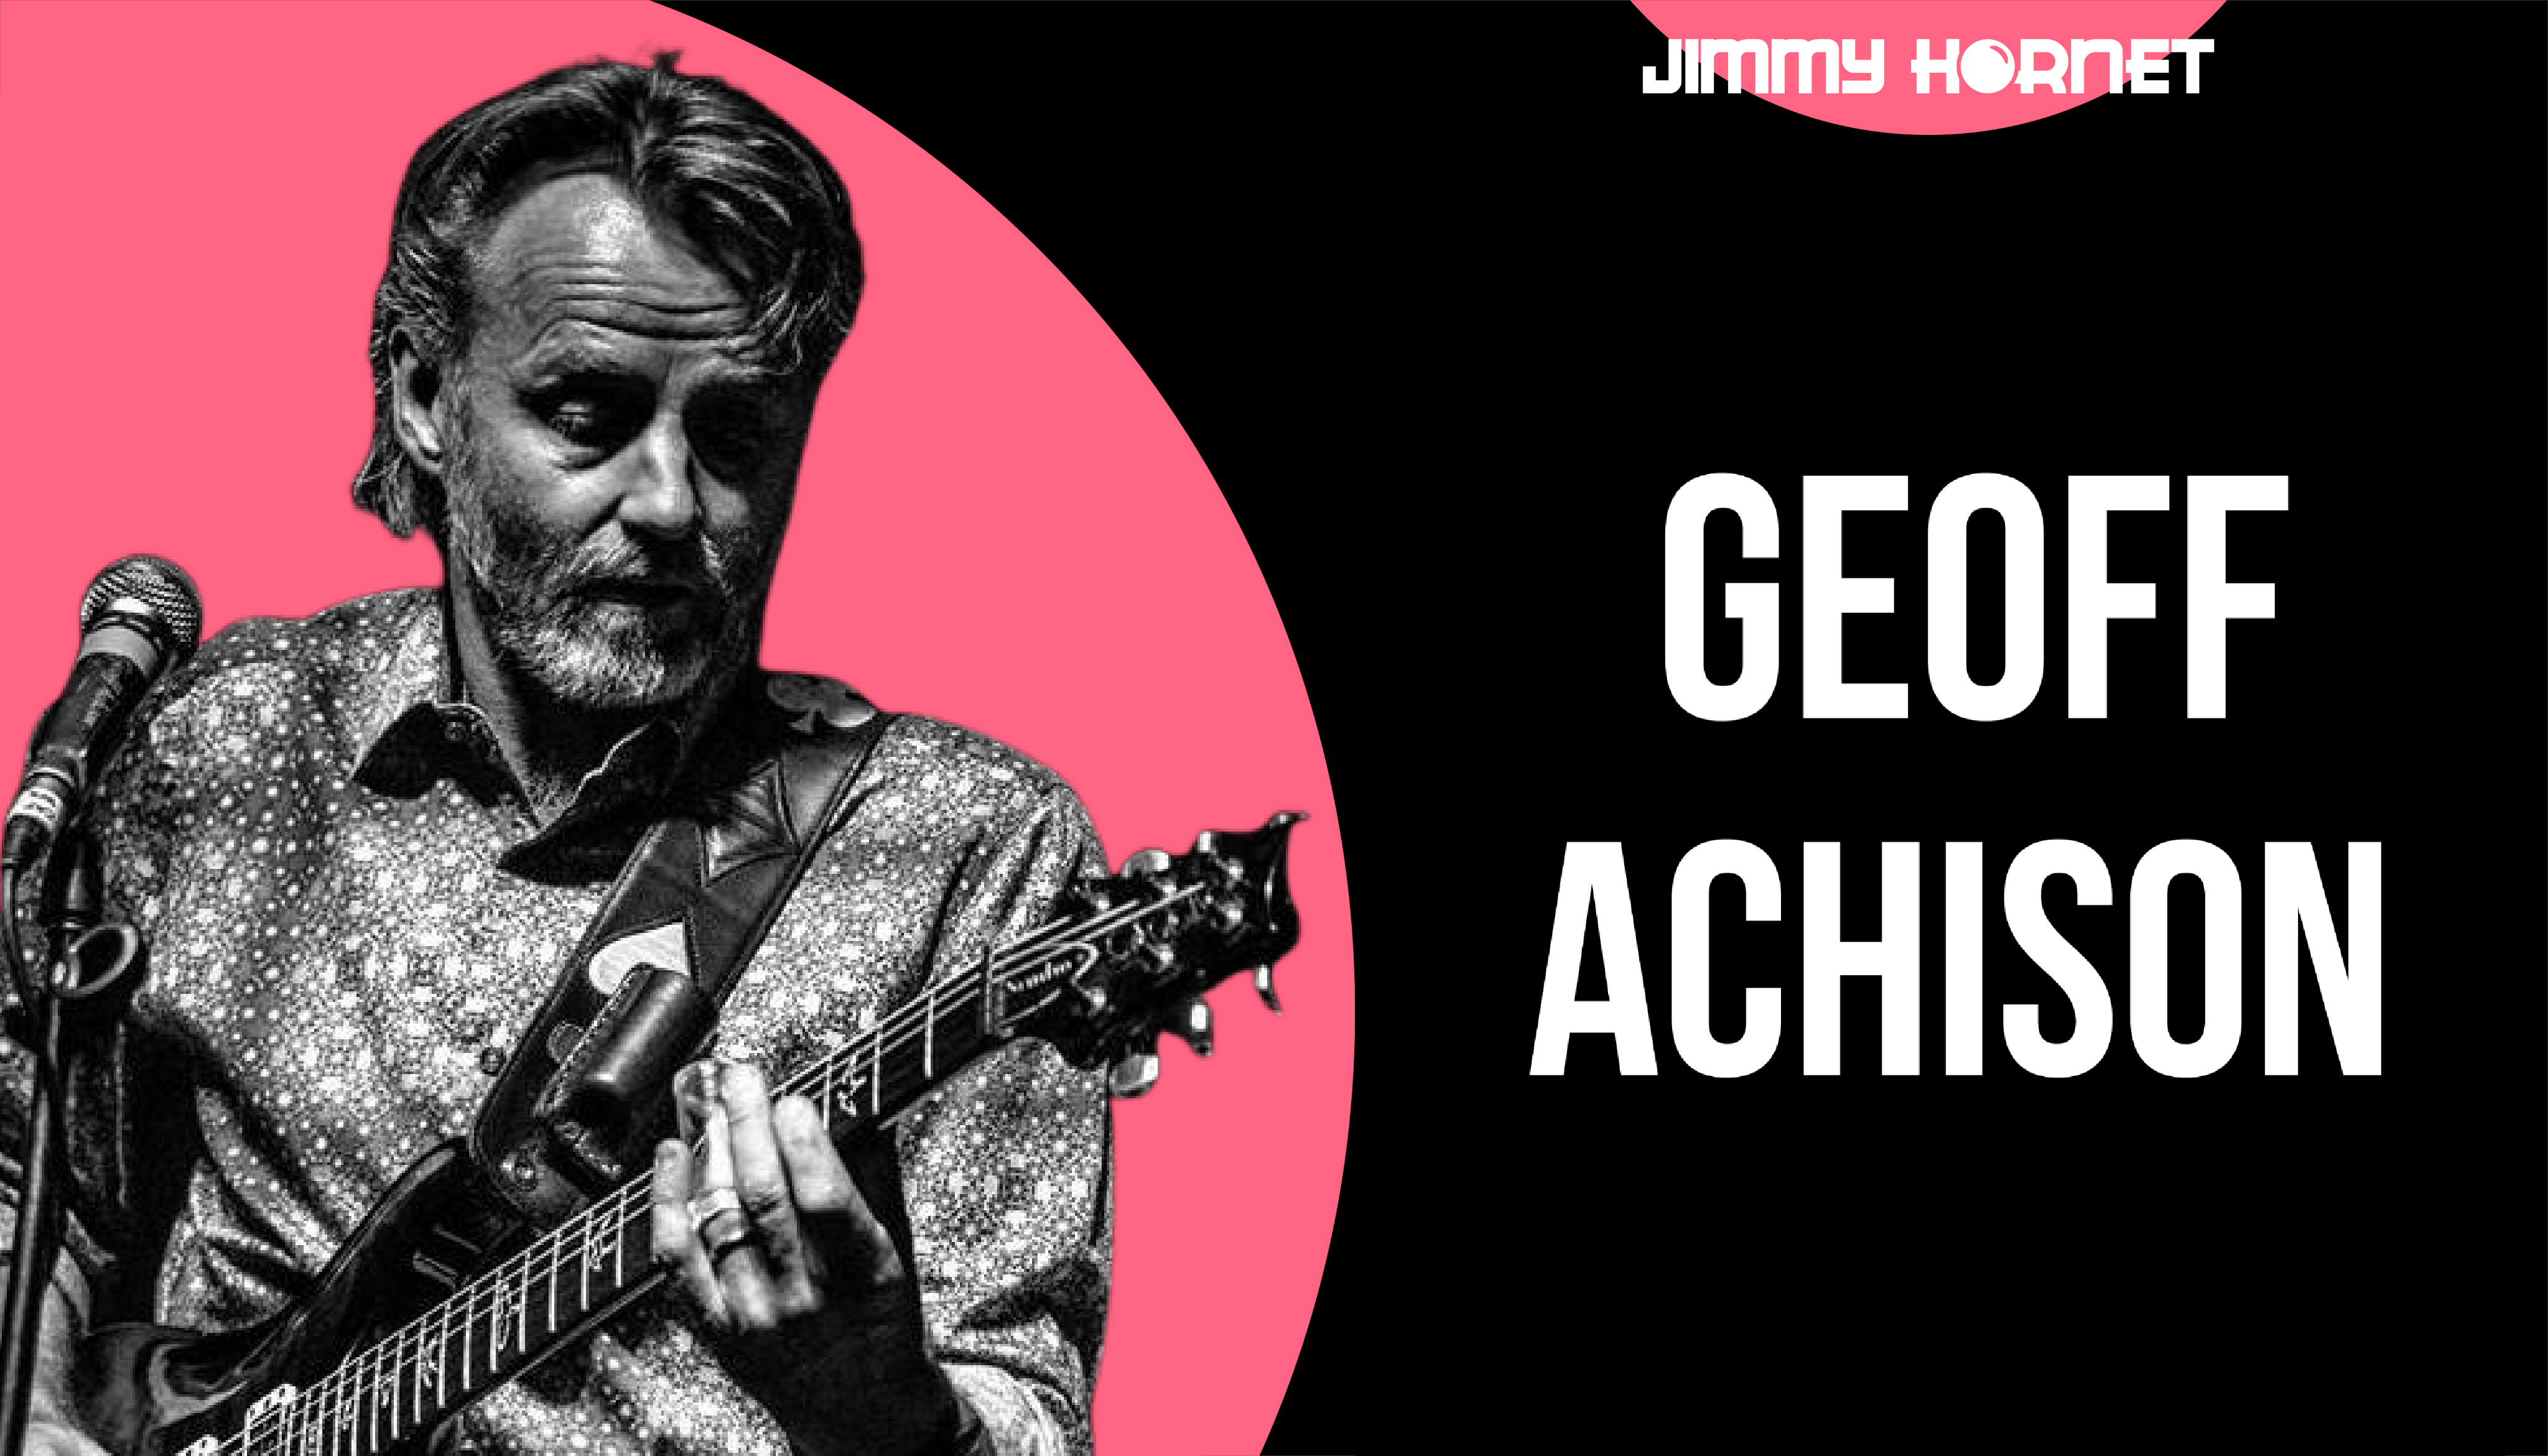 Geoff Achison at Jimmy Hornet